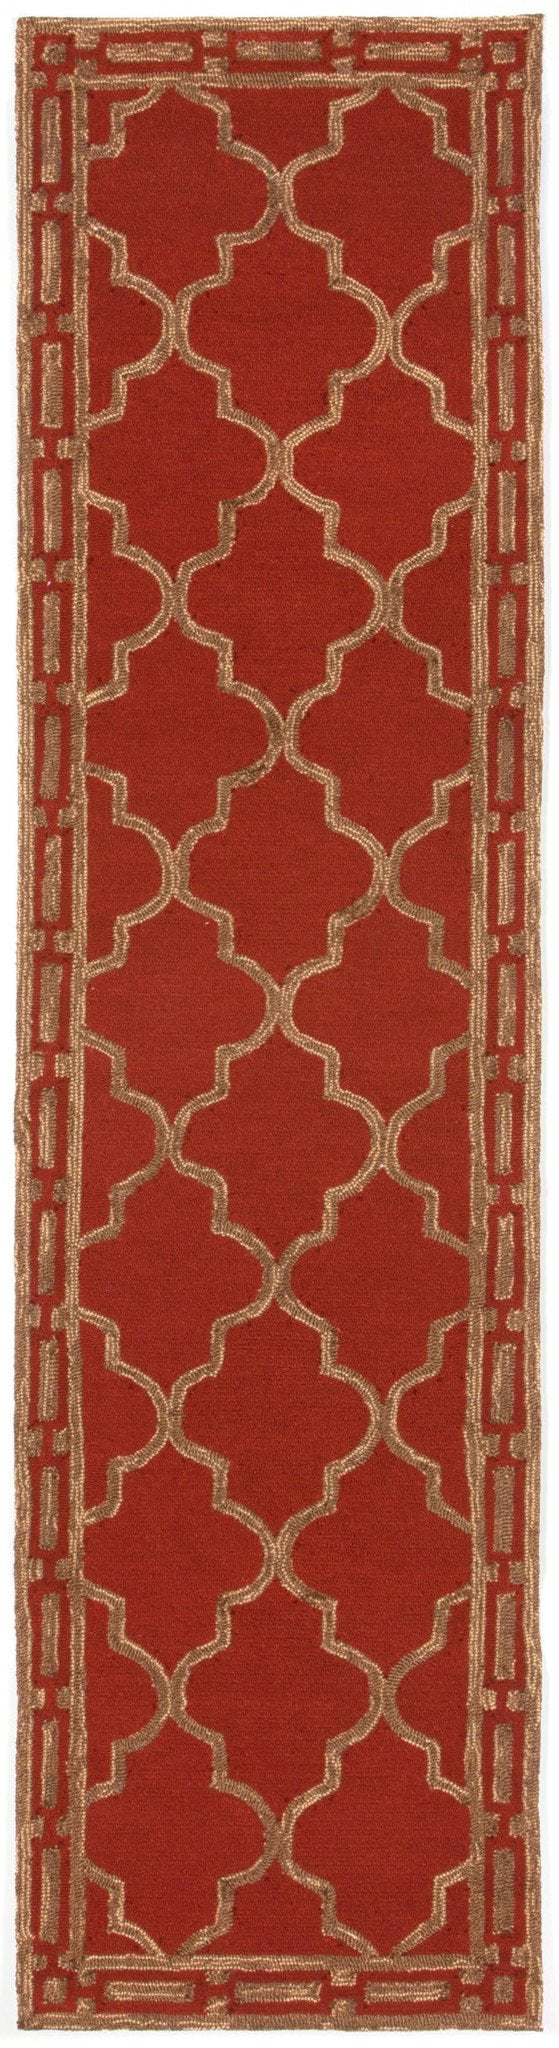 Trans-Ocean Imports RVLR8197624 Ravella Collection Red Finish Everywear Rug from Trans-Ocean